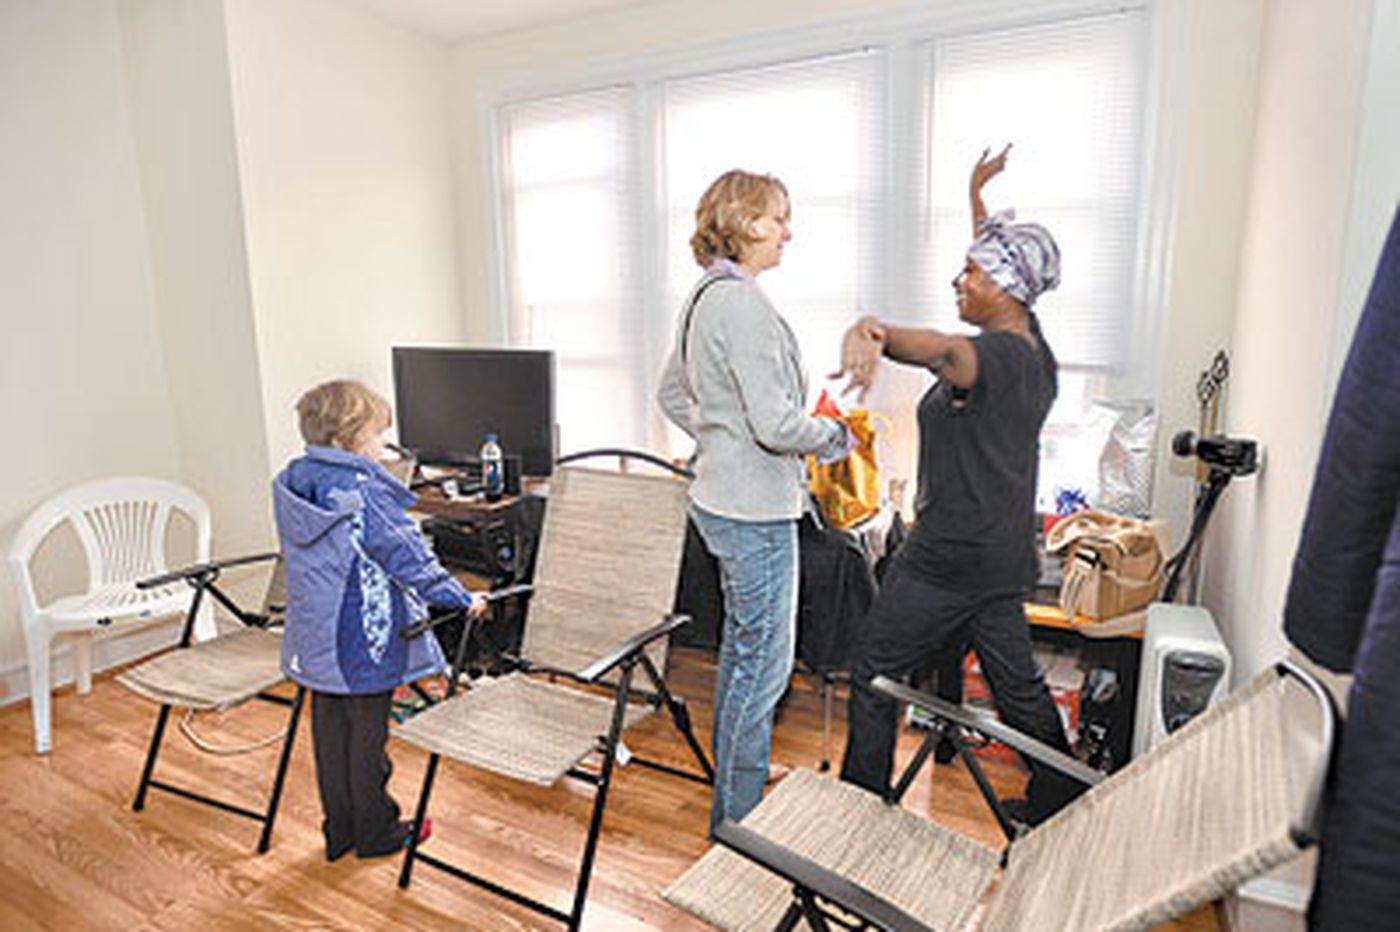 Inquirer spotlight on hunger spurs acts of generosity